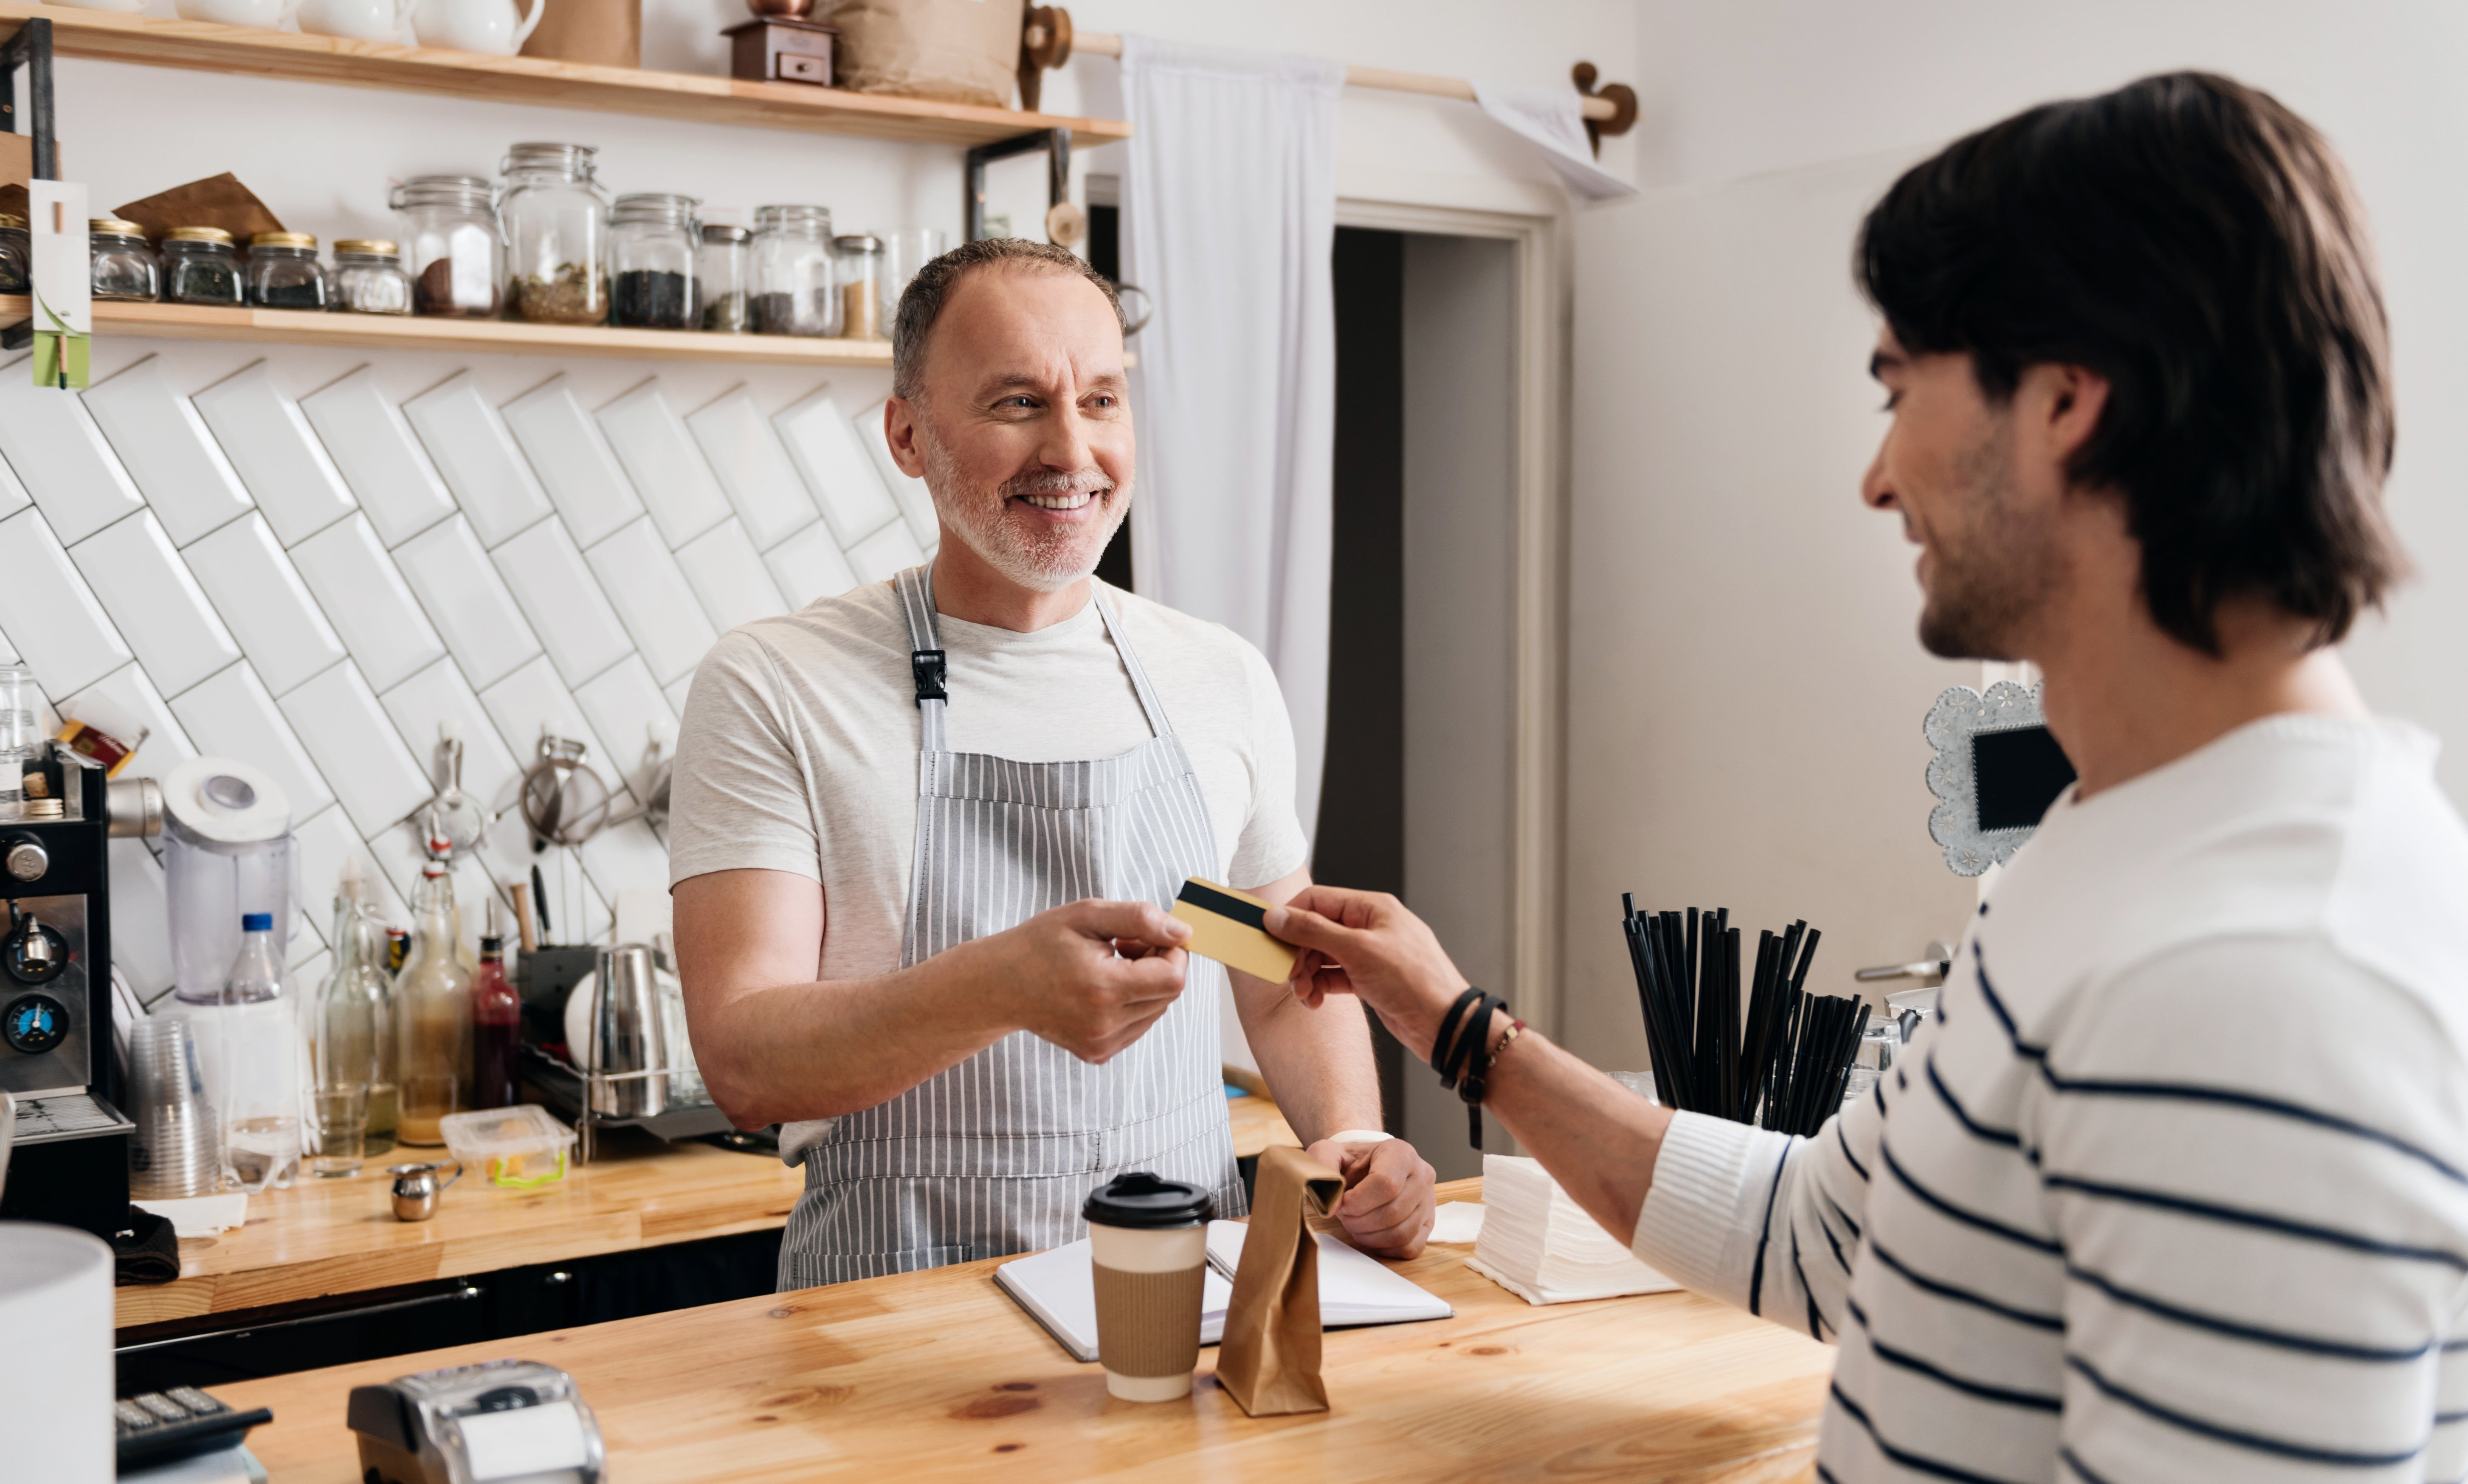 Buzzing Cafe and Coffee Shop business for sale in Queensland